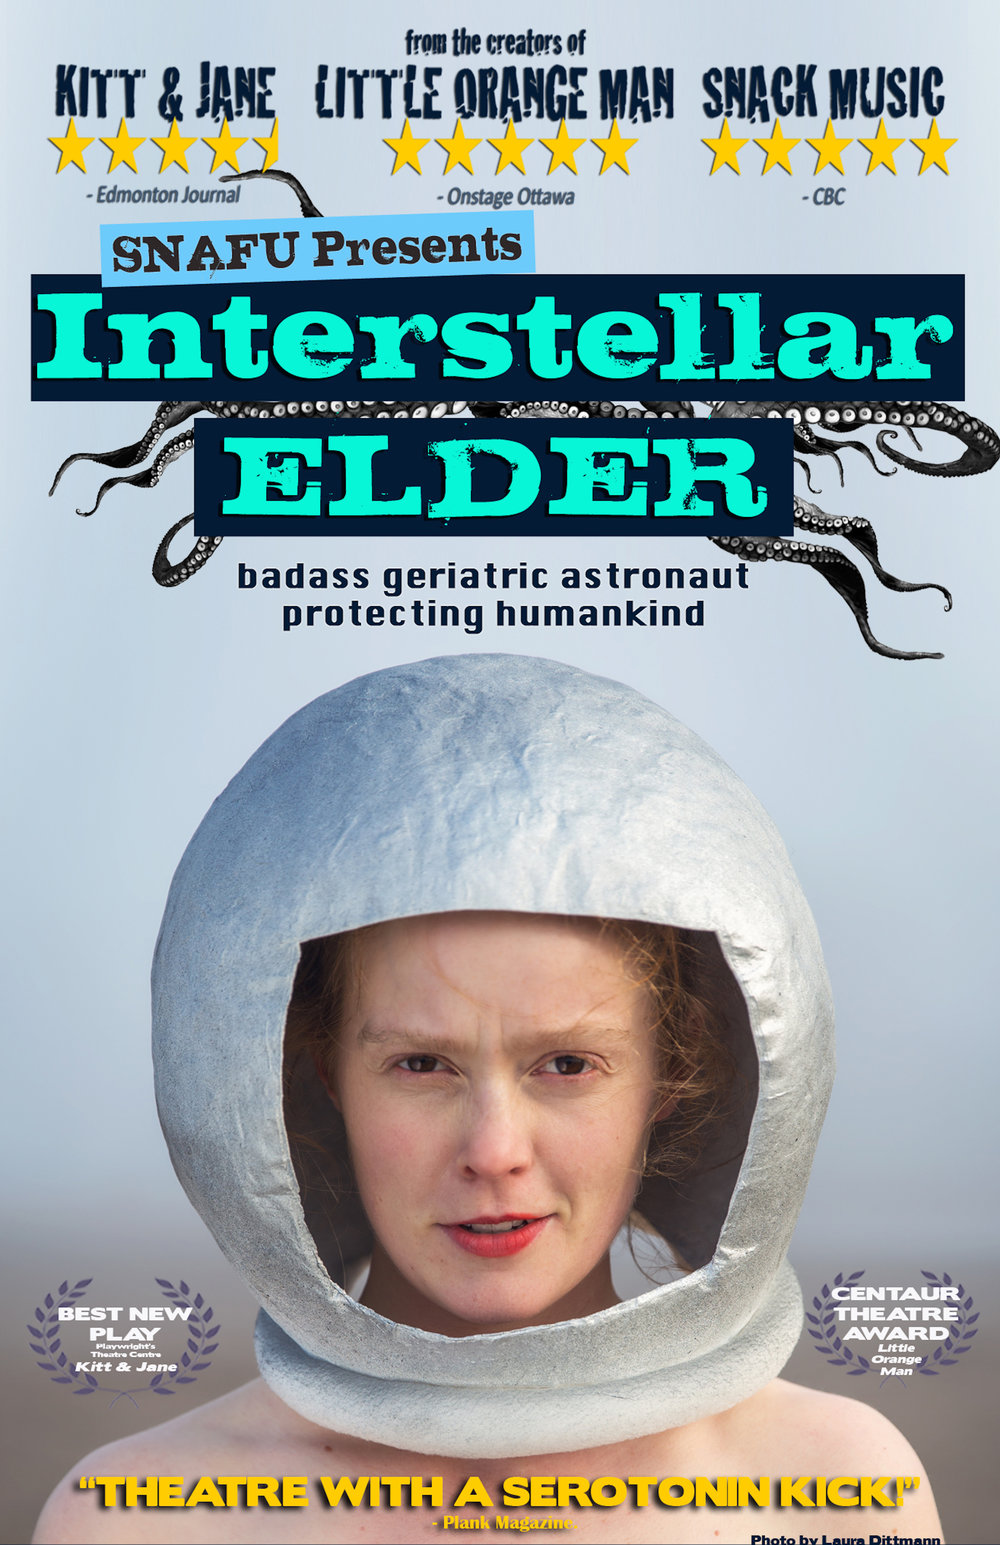 Interstellar Elder  - fringetoronto.com/festivals/fringe/event/interstellar-elder